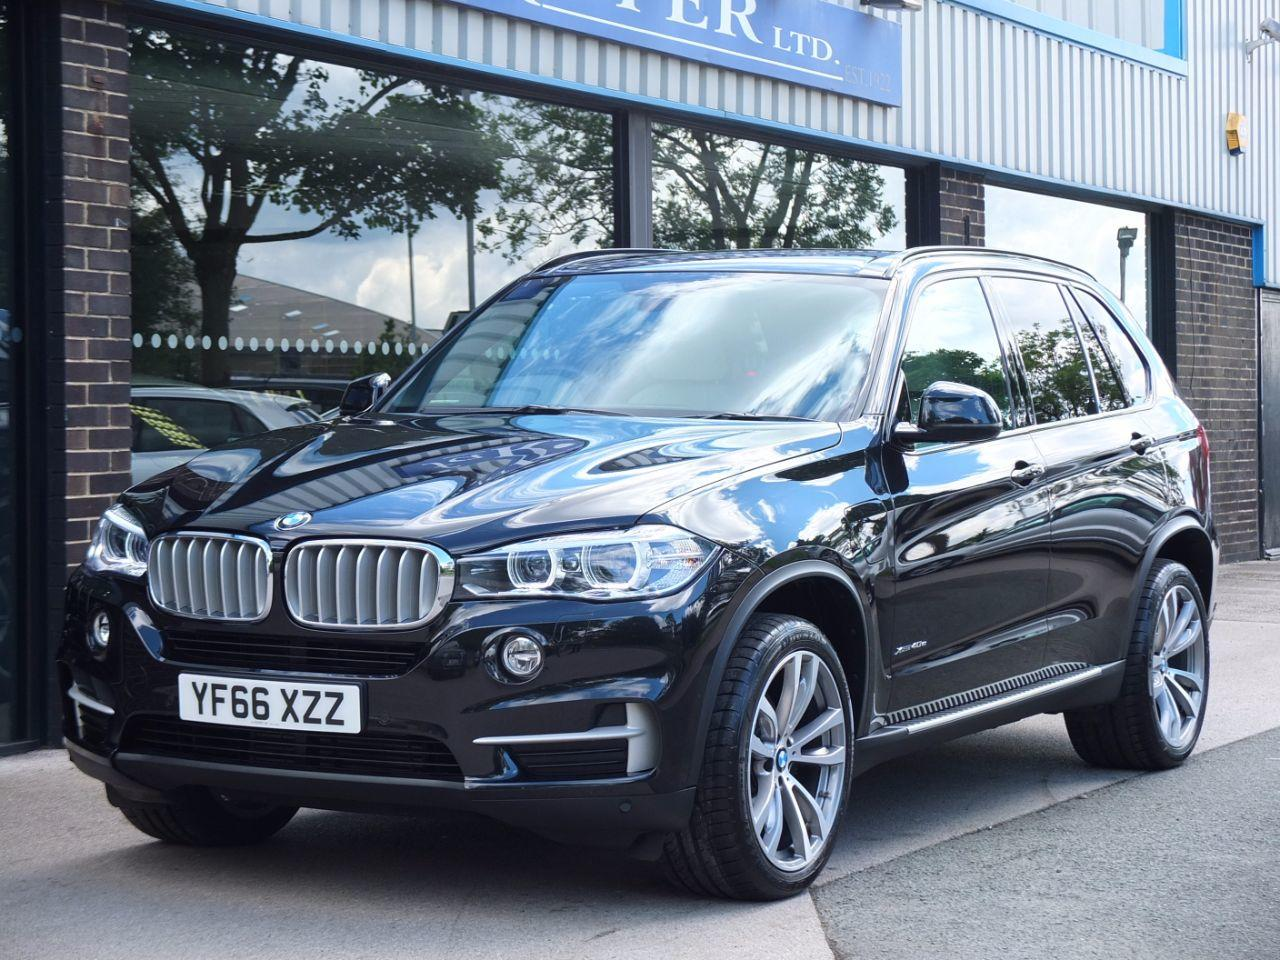 BMW X5 2.0 xDrive40e SE Dynamic (Electric Plug in Hybrid) Auto Estate Hybrid Black Sapphire MetallicBMW X5 2.0 xDrive40e SE Dynamic (Electric Plug in Hybrid) Auto Estate Hybrid Black Sapphire Metallic at fa Roper Ltd Bradford